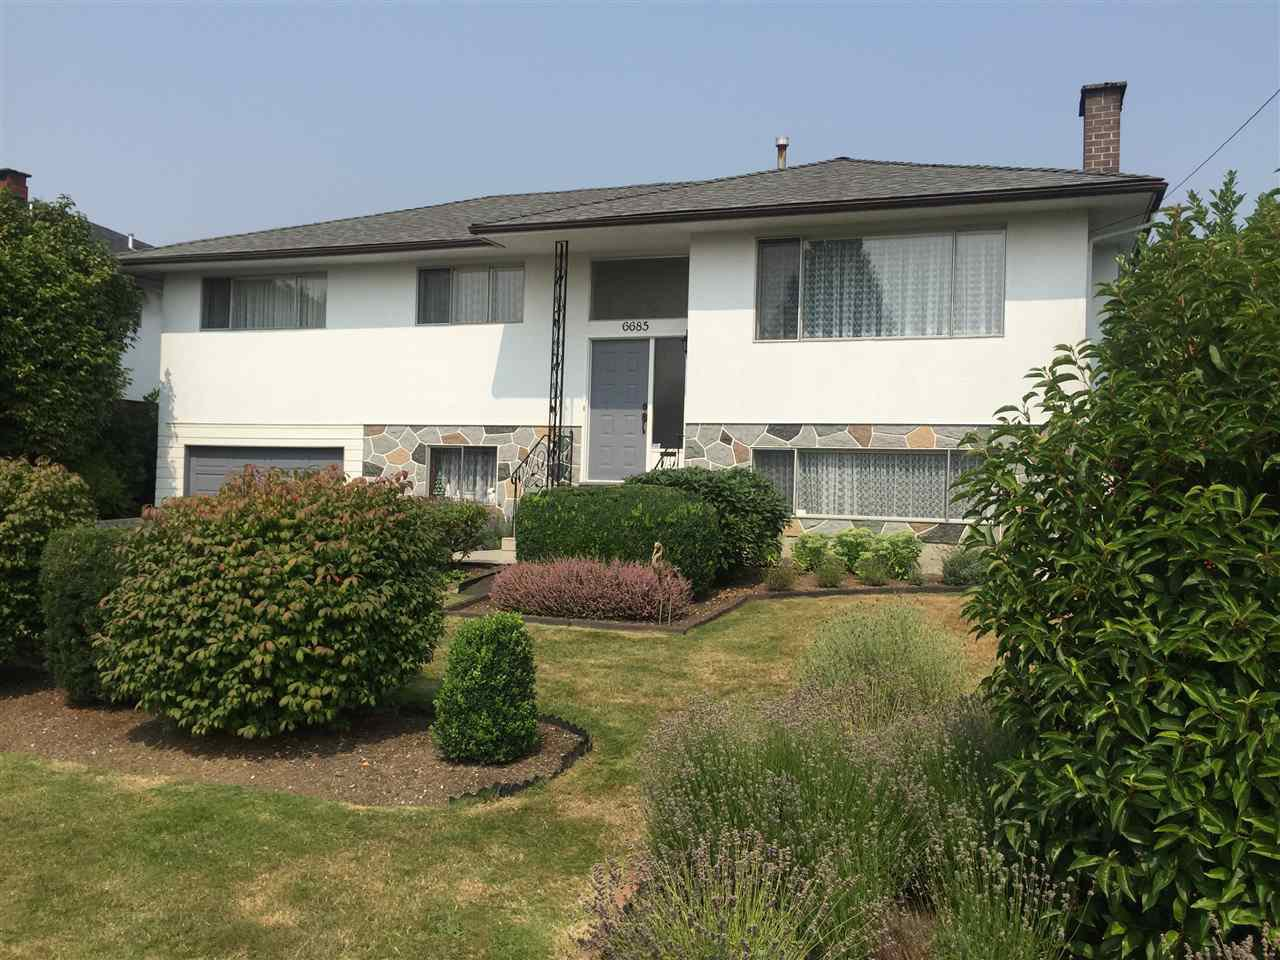 Main Photo: 6685 AUBREY Street in Burnaby: Sperling-Duthie House for sale (Burnaby North)  : MLS®# R2321445